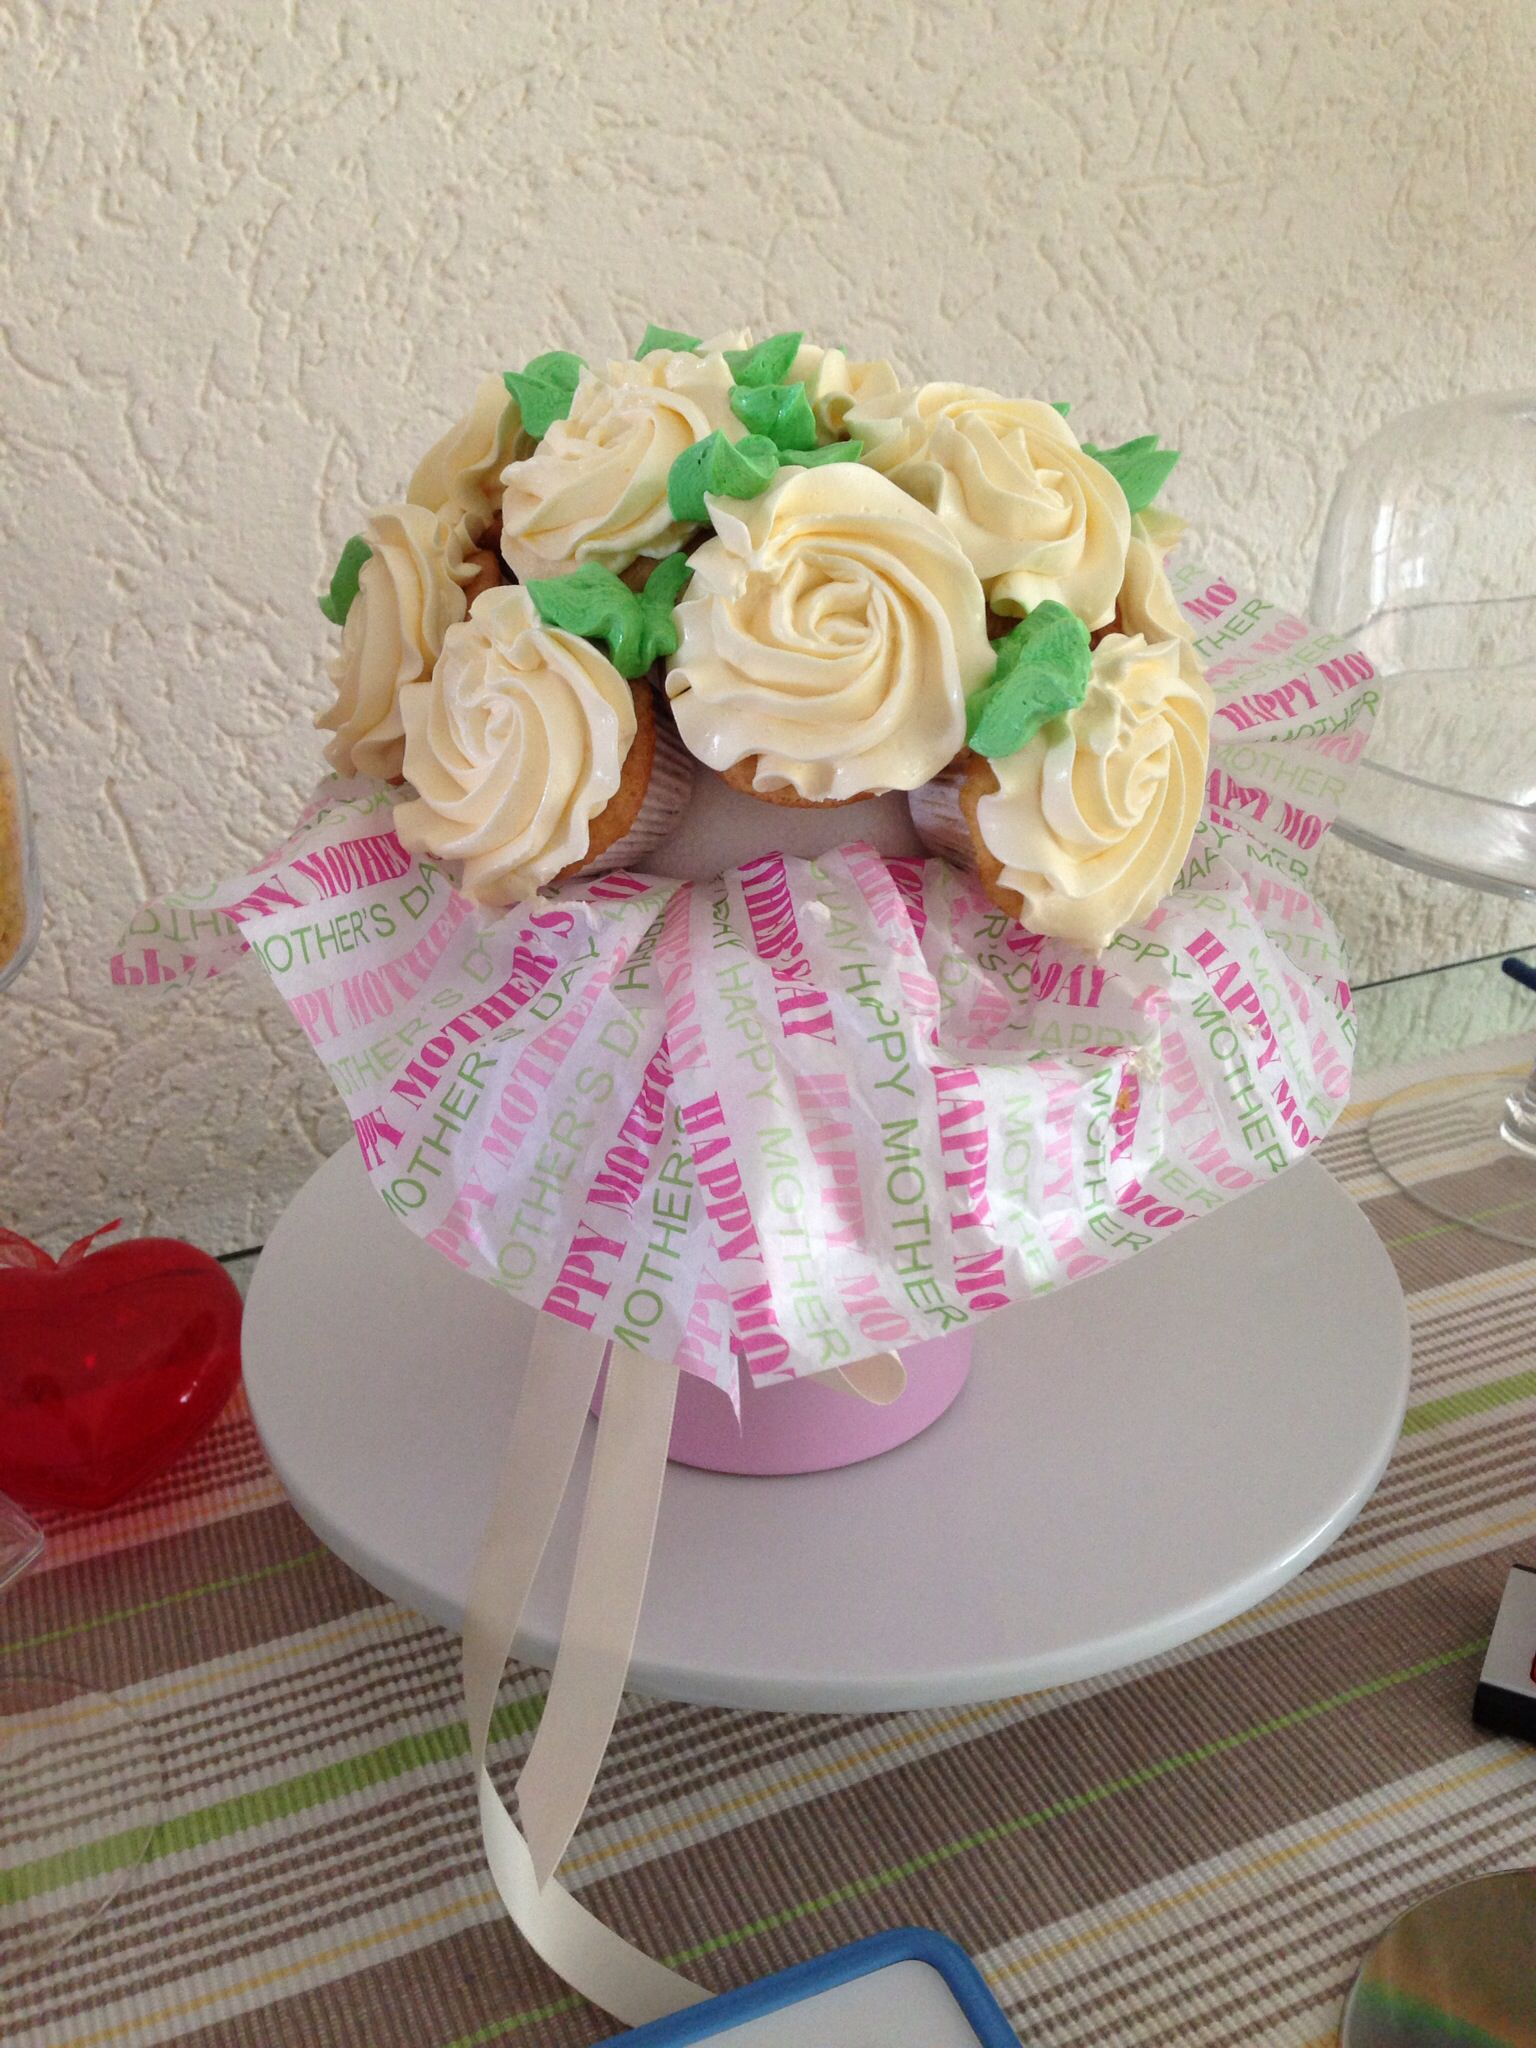 Mothers day cupcake bouquet bouquets mothers day pinterest mothers day cupcake bouquet izmirmasajfo